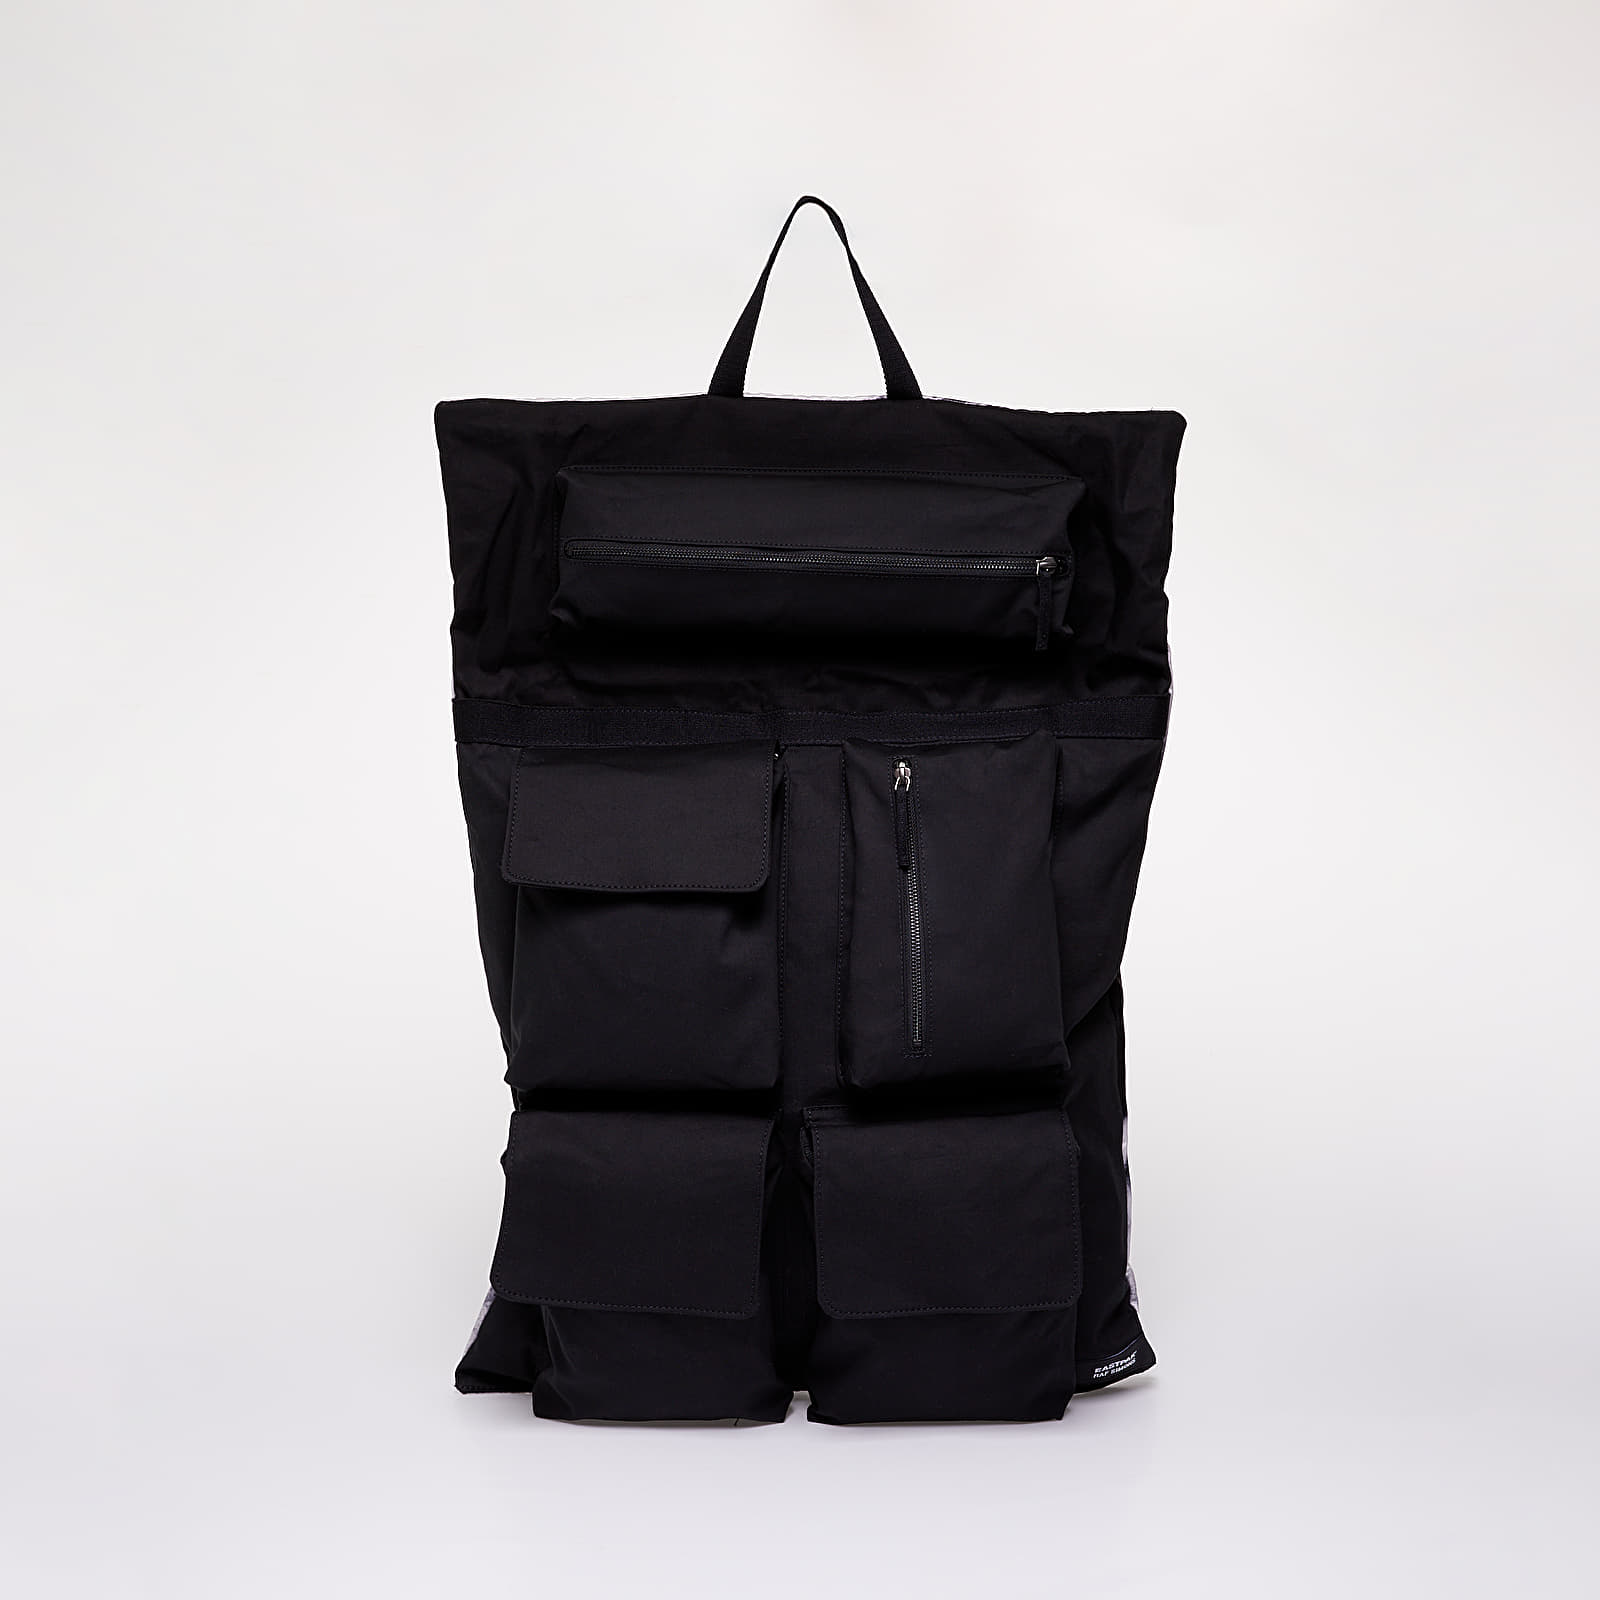 Backpacks EASTPAK x RAF SIMONS Poster Backpack Black